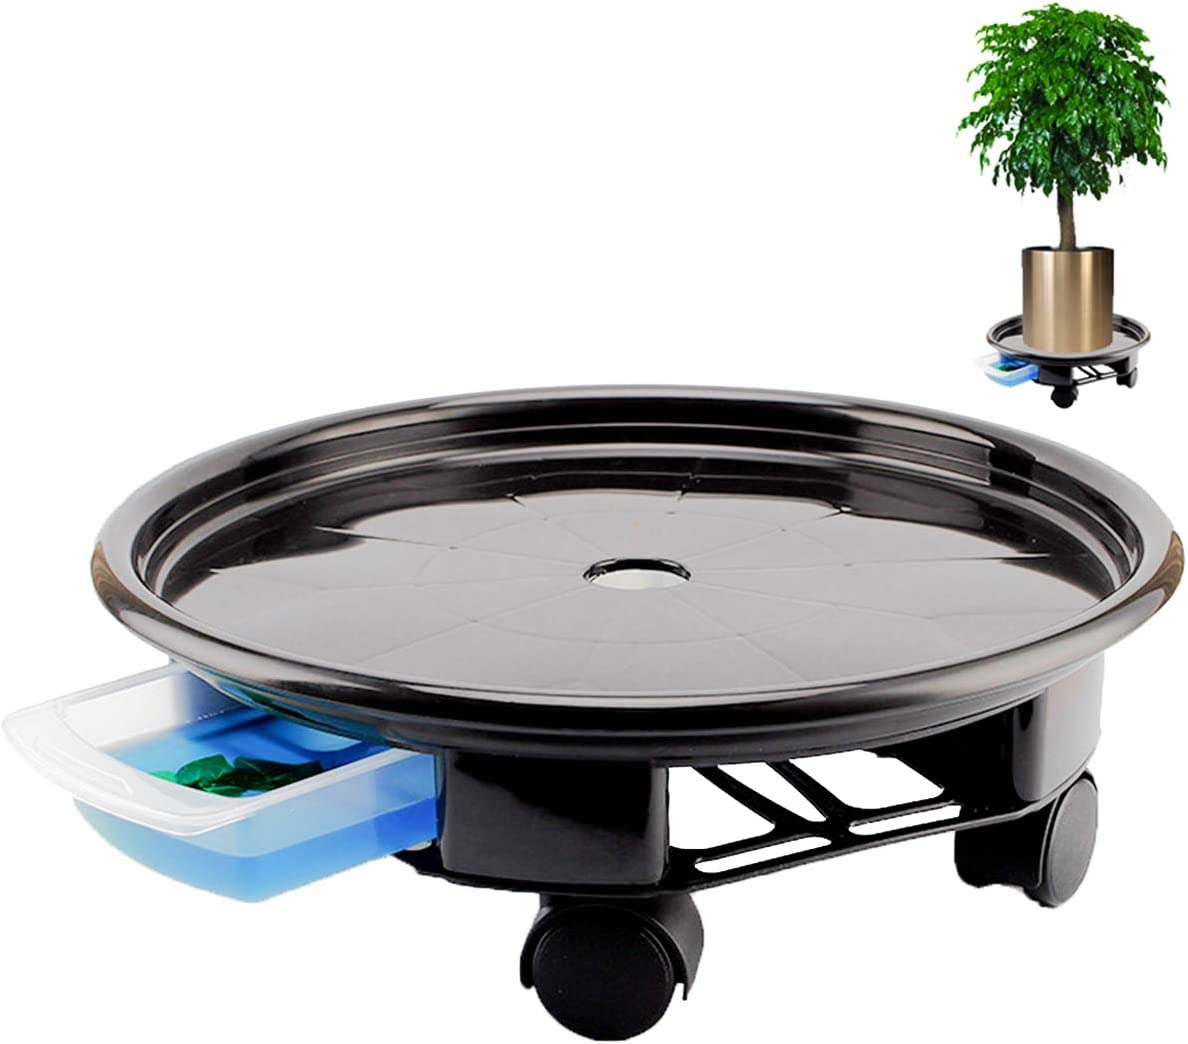 17.7inch Black Plant Caddy With Plan Water Max 49% OFF Heavy 2021 spring and summer new Duty Container